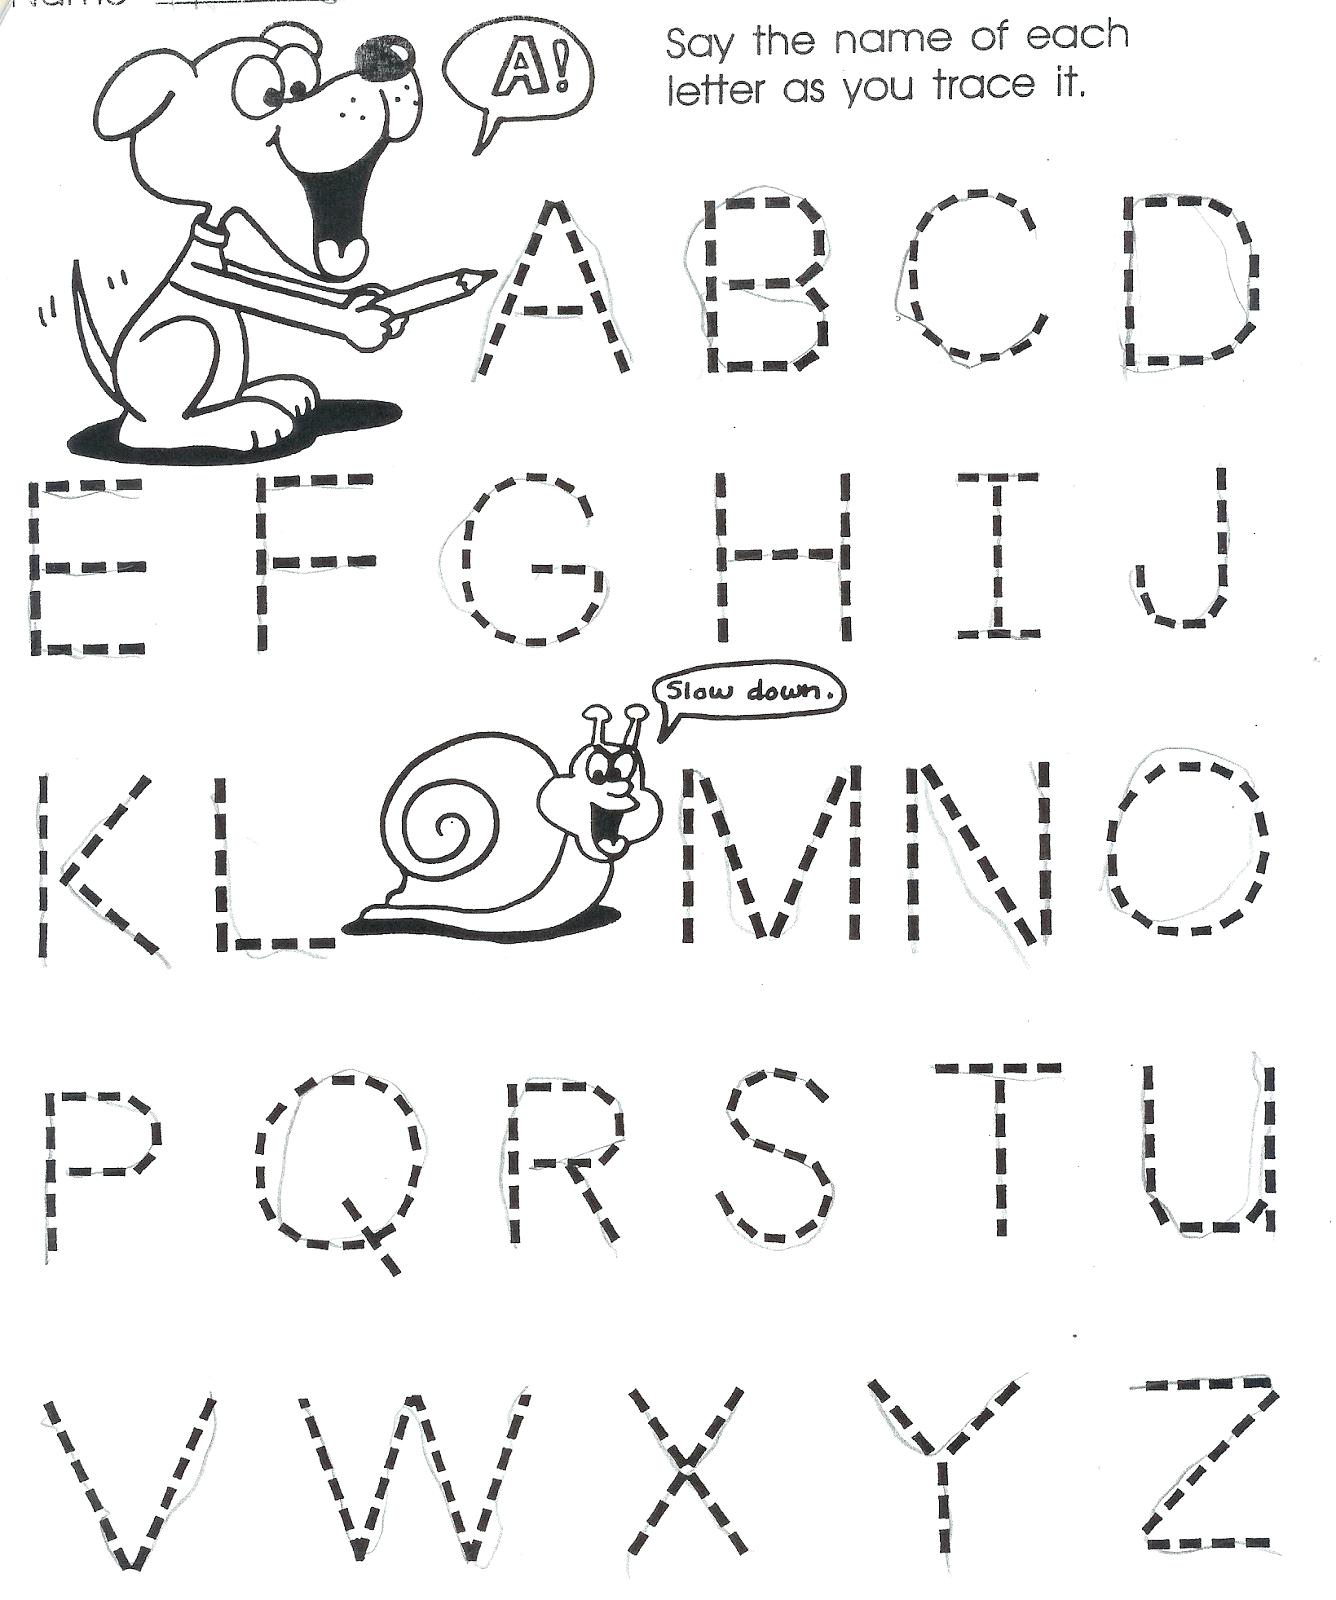 Alphabet Worksheets For 2 Year Olds Alphabet Worksheets For pertaining to Alphabet Tracing Worksheets For 2 Year Olds